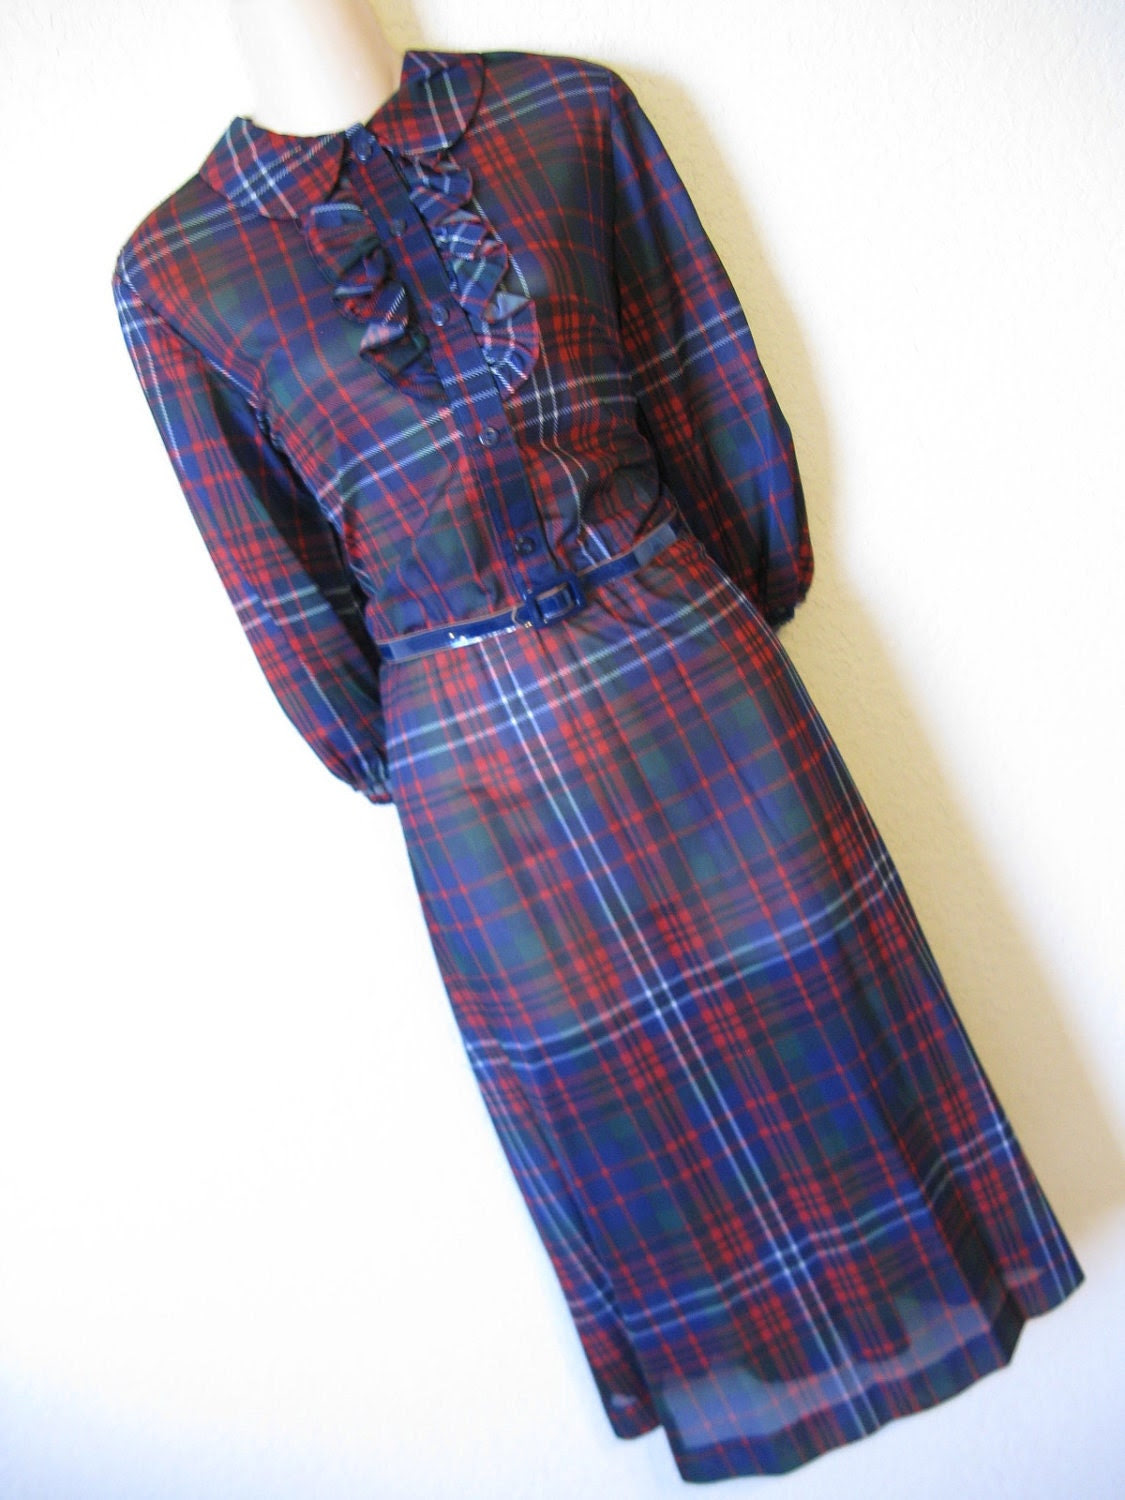 mad for plaid. 1970's navy and red tartan dress. ruffle bodice. medium. new old stock.